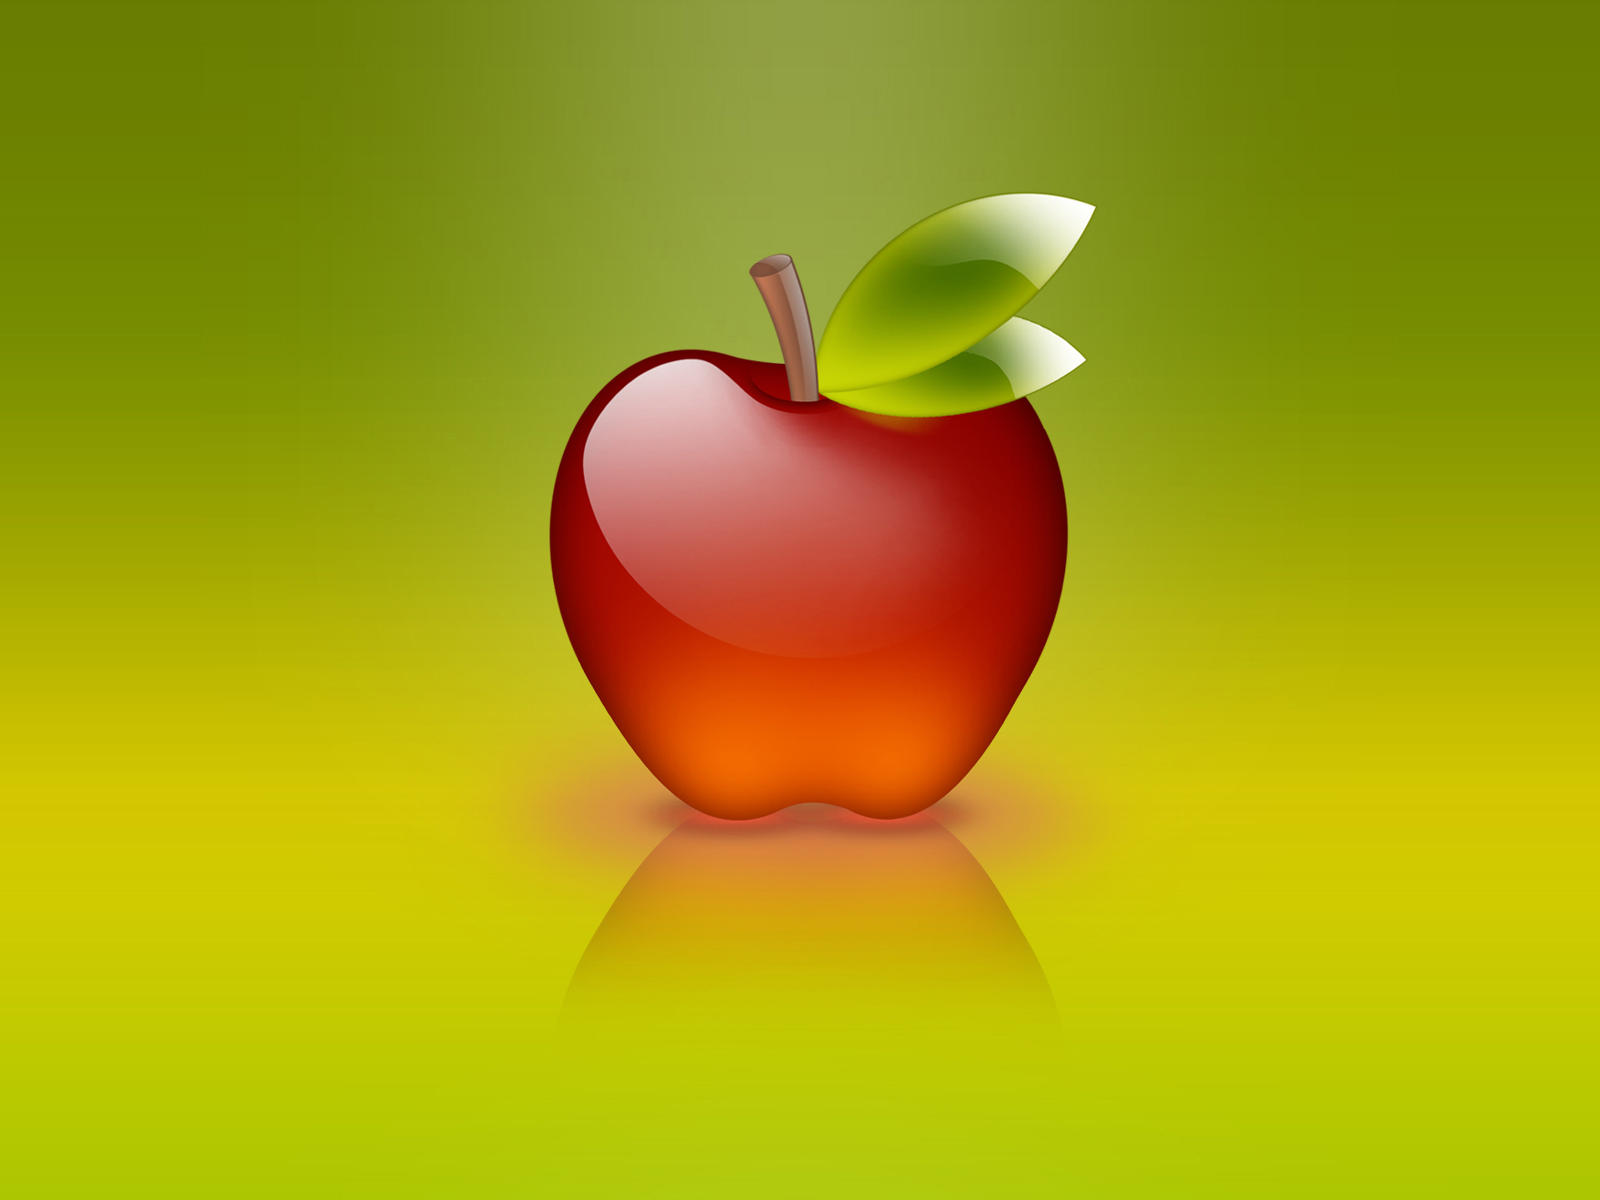 Hd Nature Wallpapers For Windows 7 Free Download Wallpapers Glass Apple Wallpapers